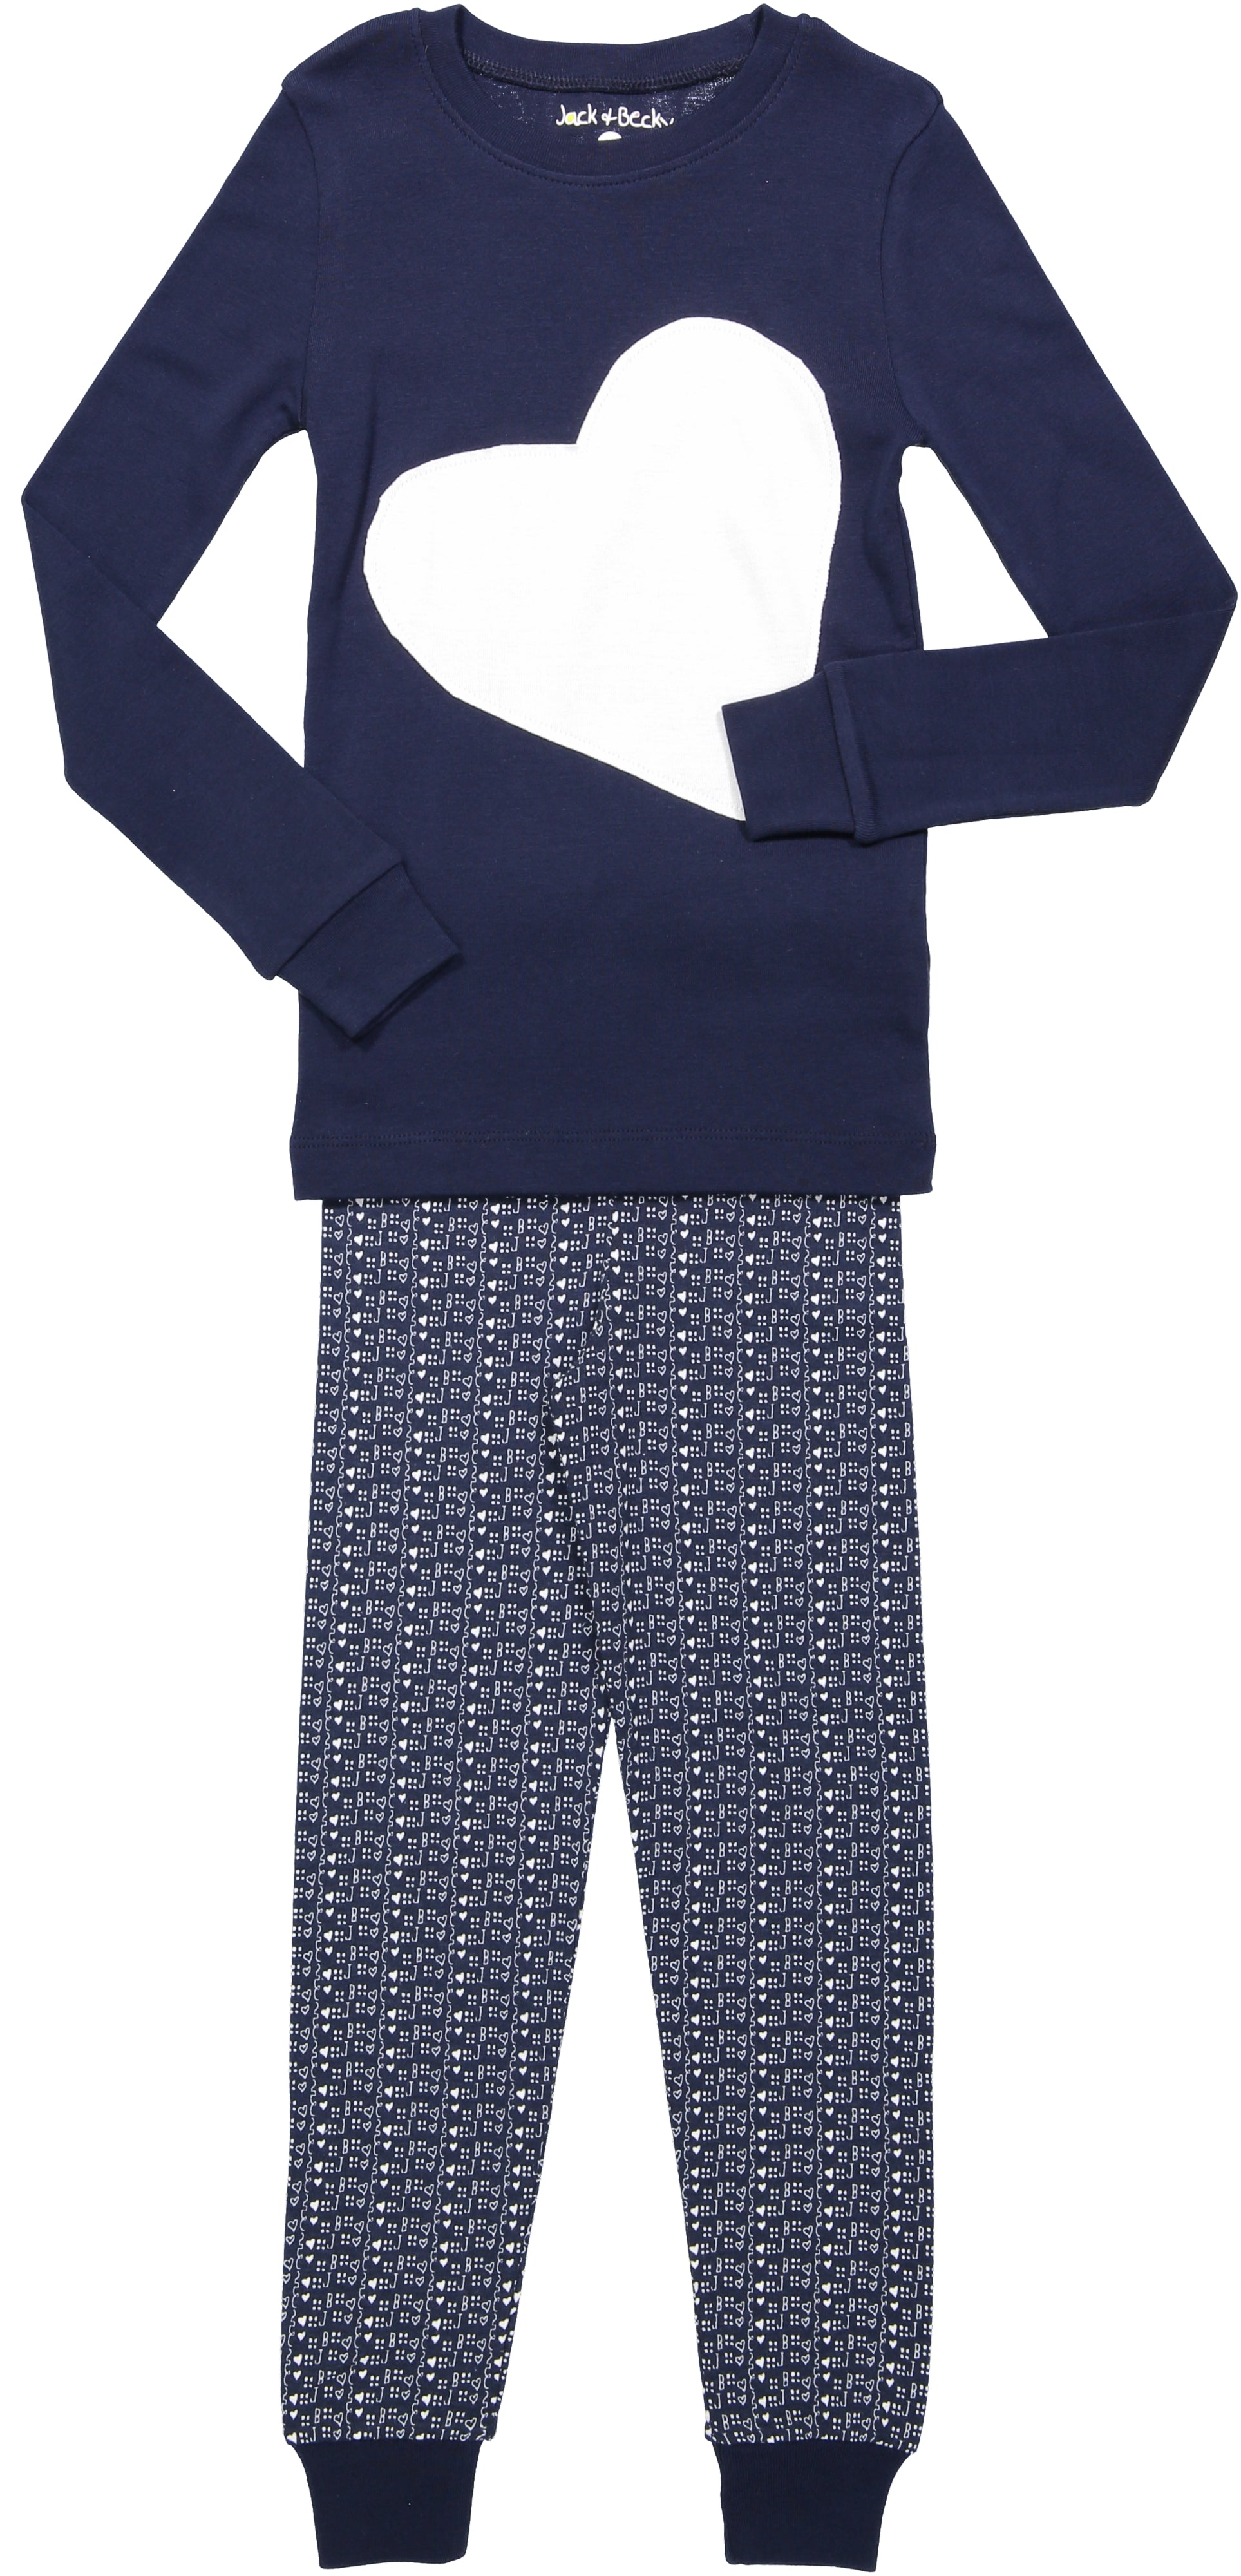 Jack and Becky Navy Pajamas With White Heart Patch